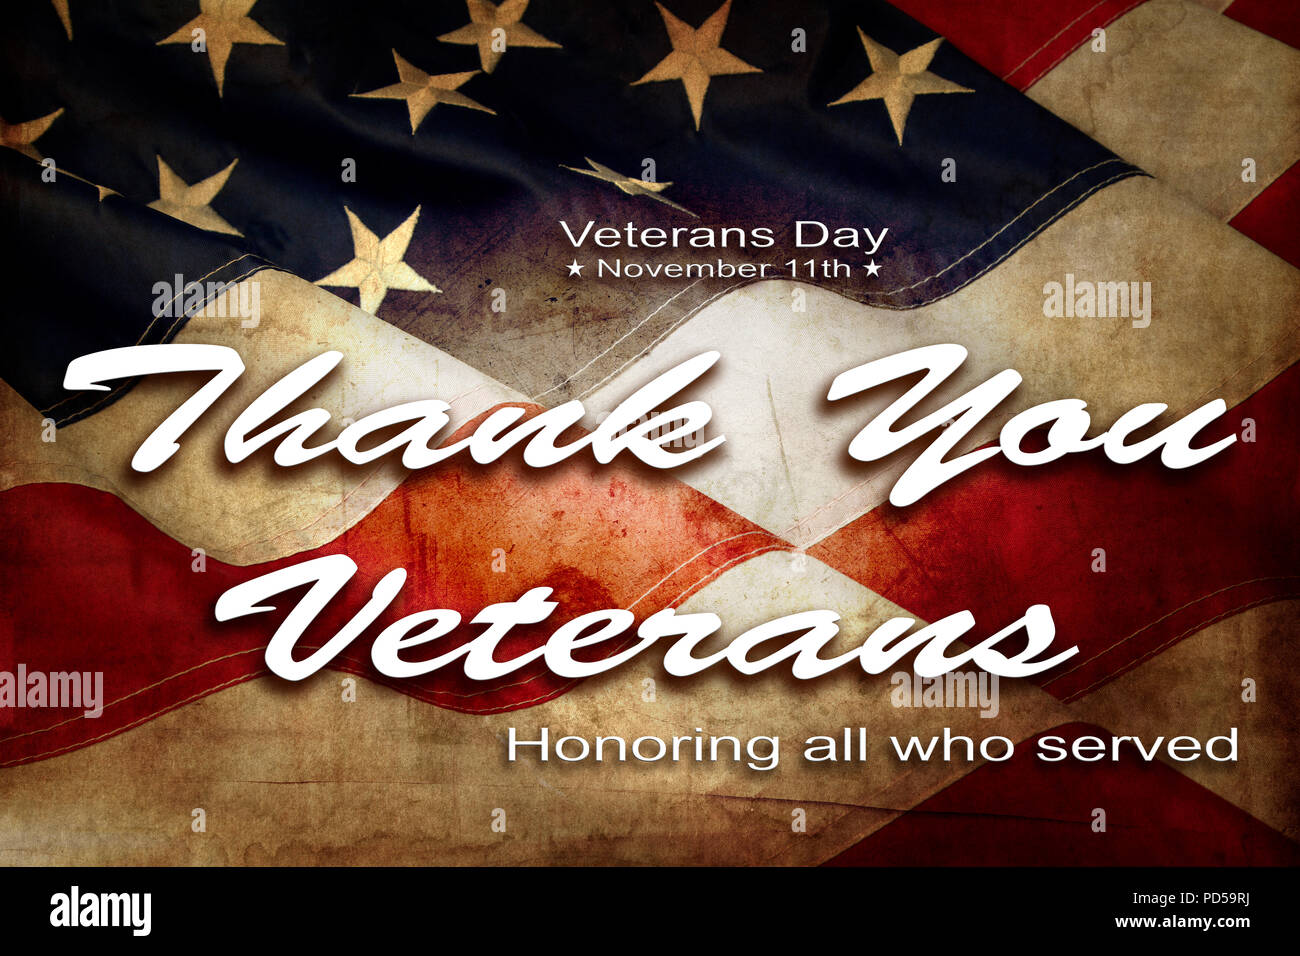 American Flag Veterans Day Text Stock Photo 214632422 Alamy